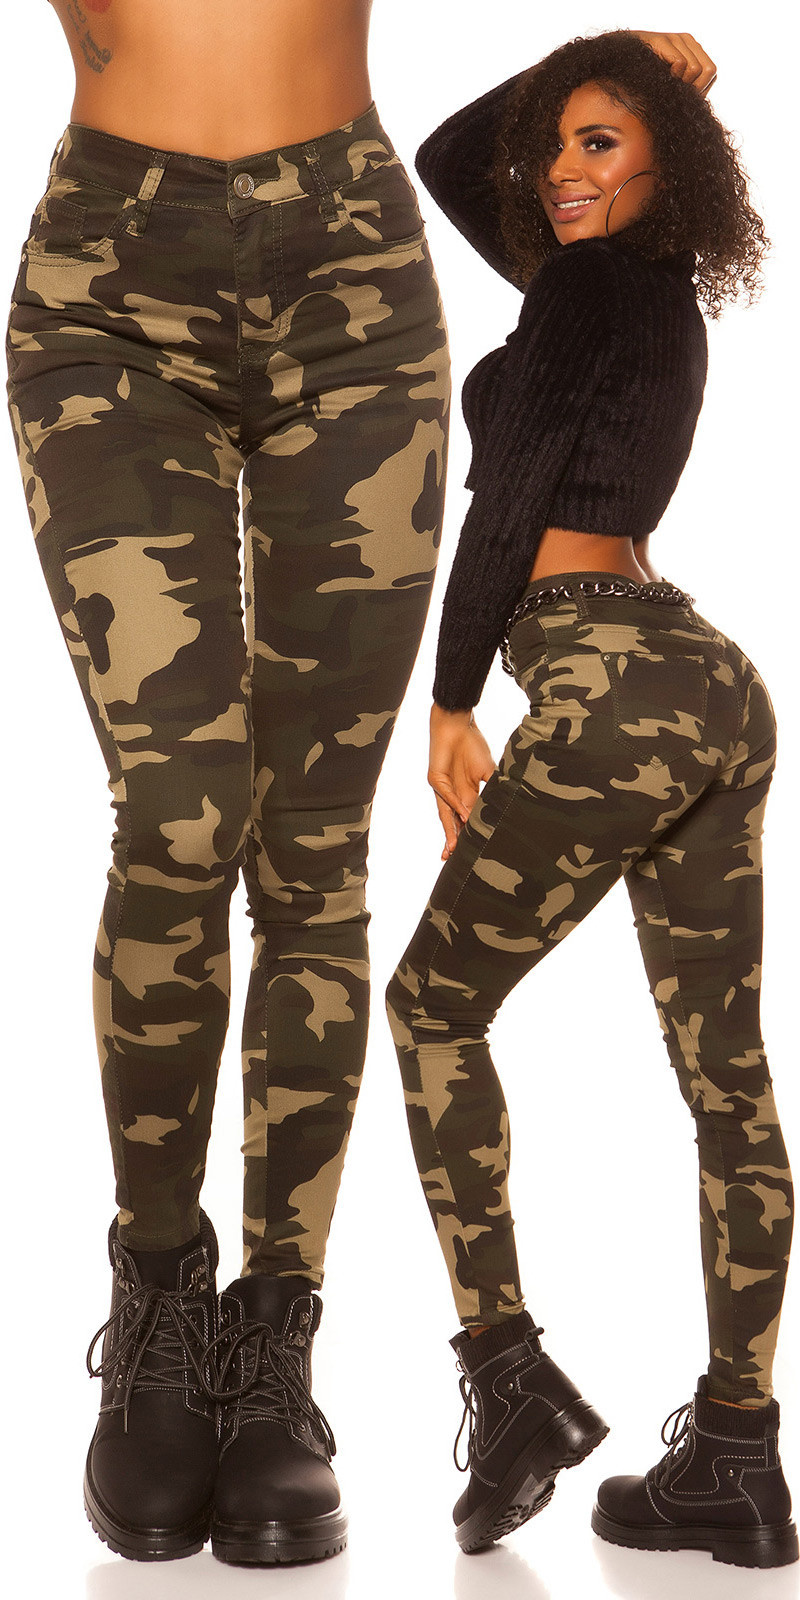 Sexy High Waist Skinny Jeans Camouflage Army